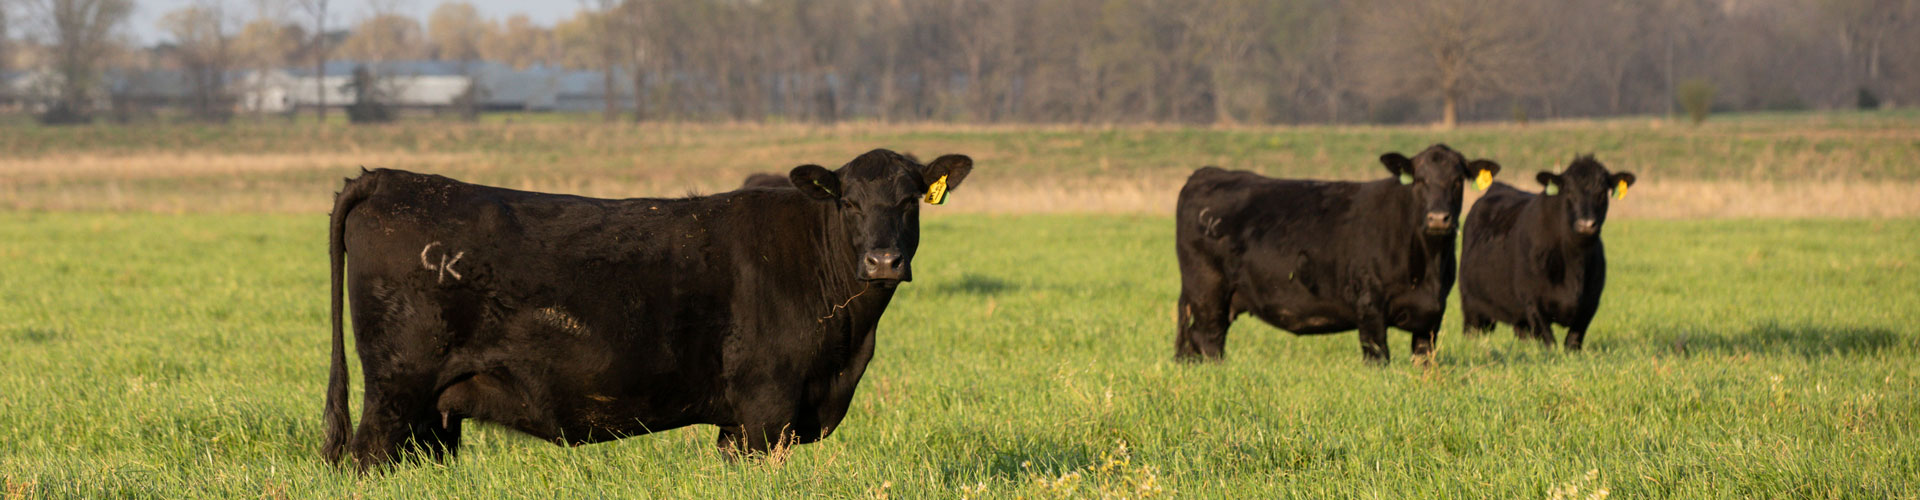 angus cows in pasture